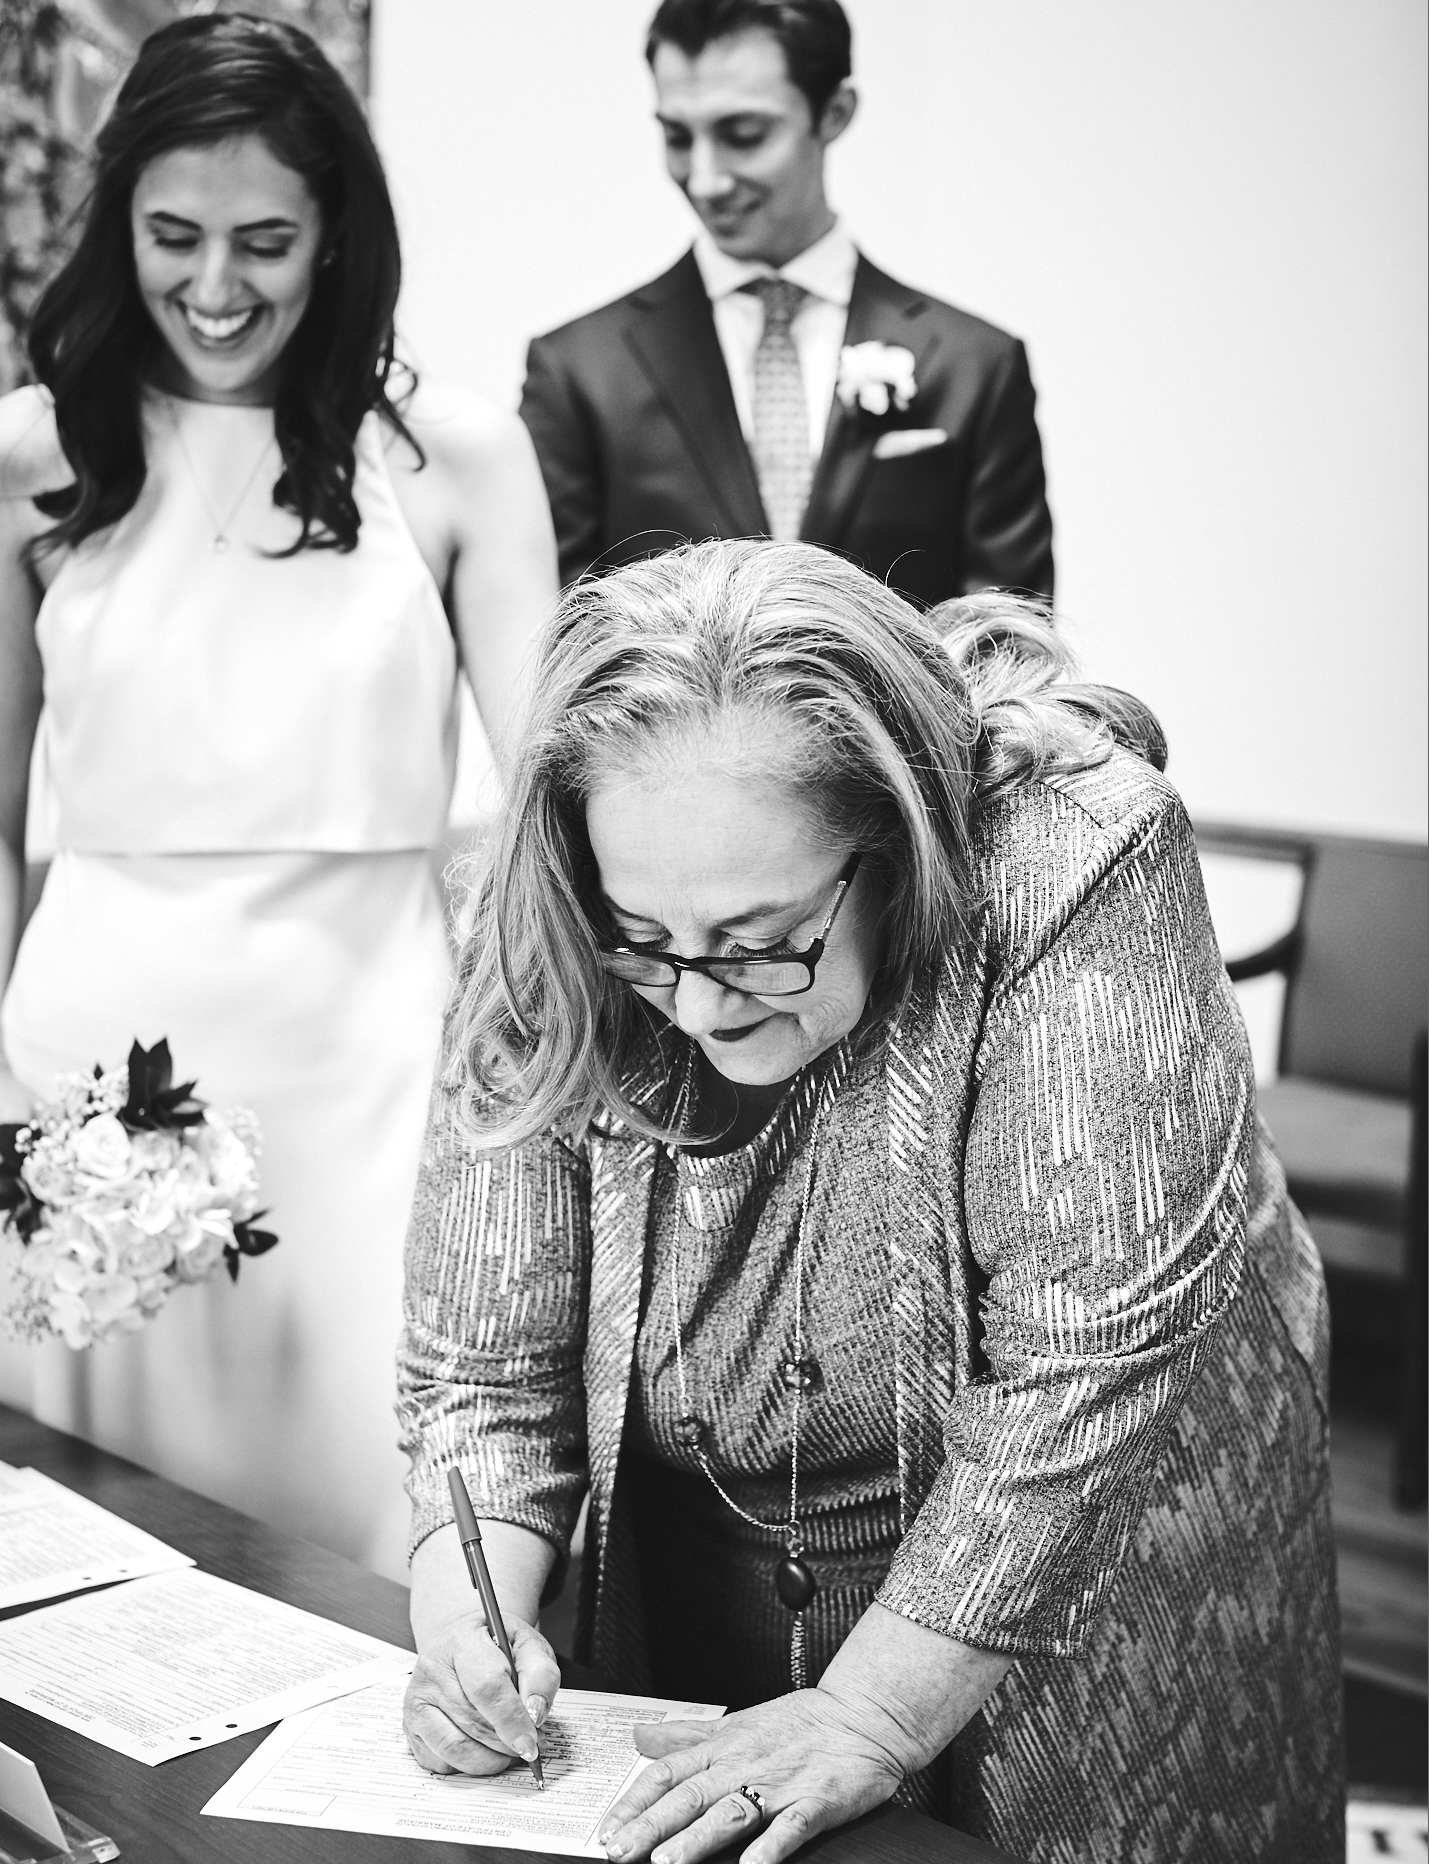 181116_JerseyCityCityHallFallWeddingPhotography_JerseyCityWeddingPhotographer_By_BriJohnsonWeddings_0057.jpg